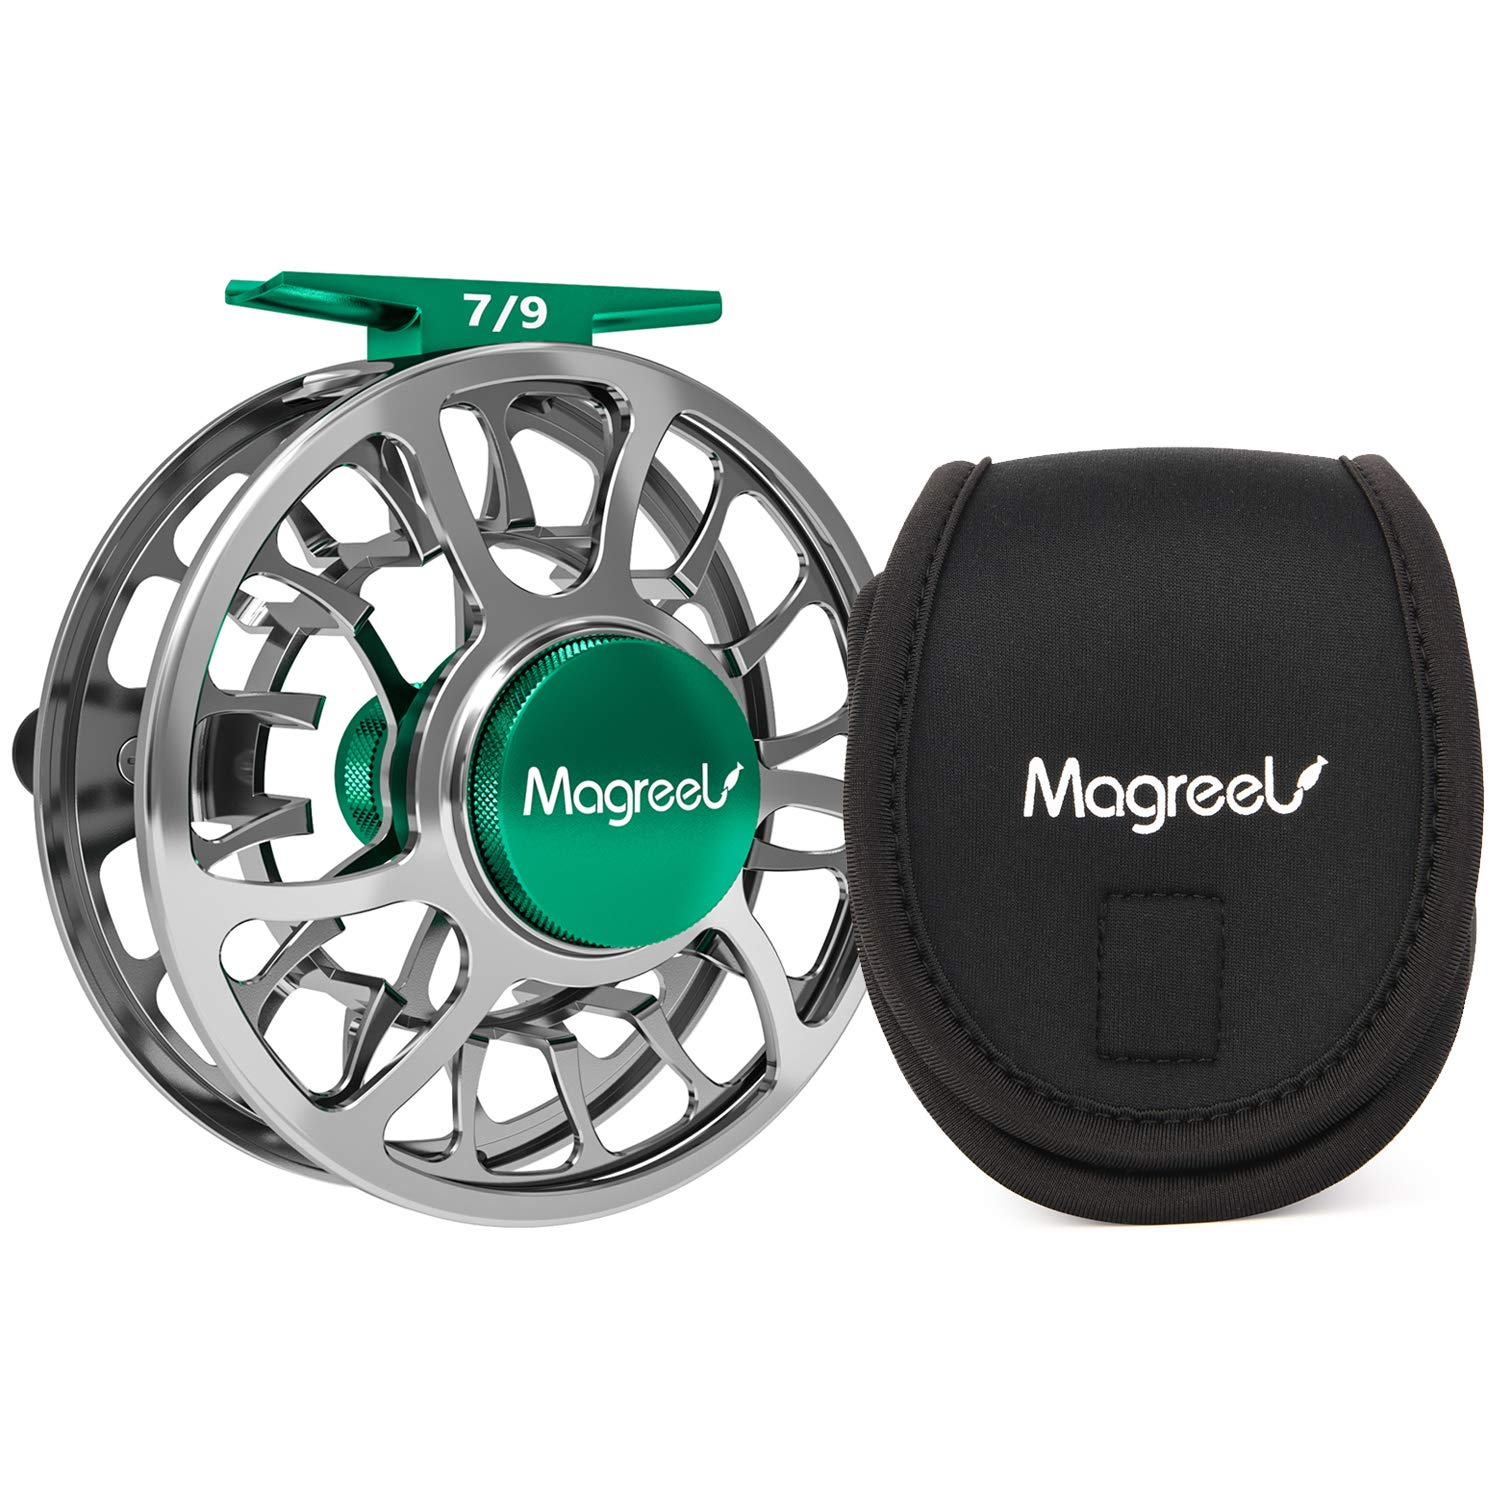 Magreel Fly Reel Fly Fishing Reel with CNC-Machined Aluminum Alloy Body 3 4, 5 6, 7 9 Weights – Gunmetal, Blue